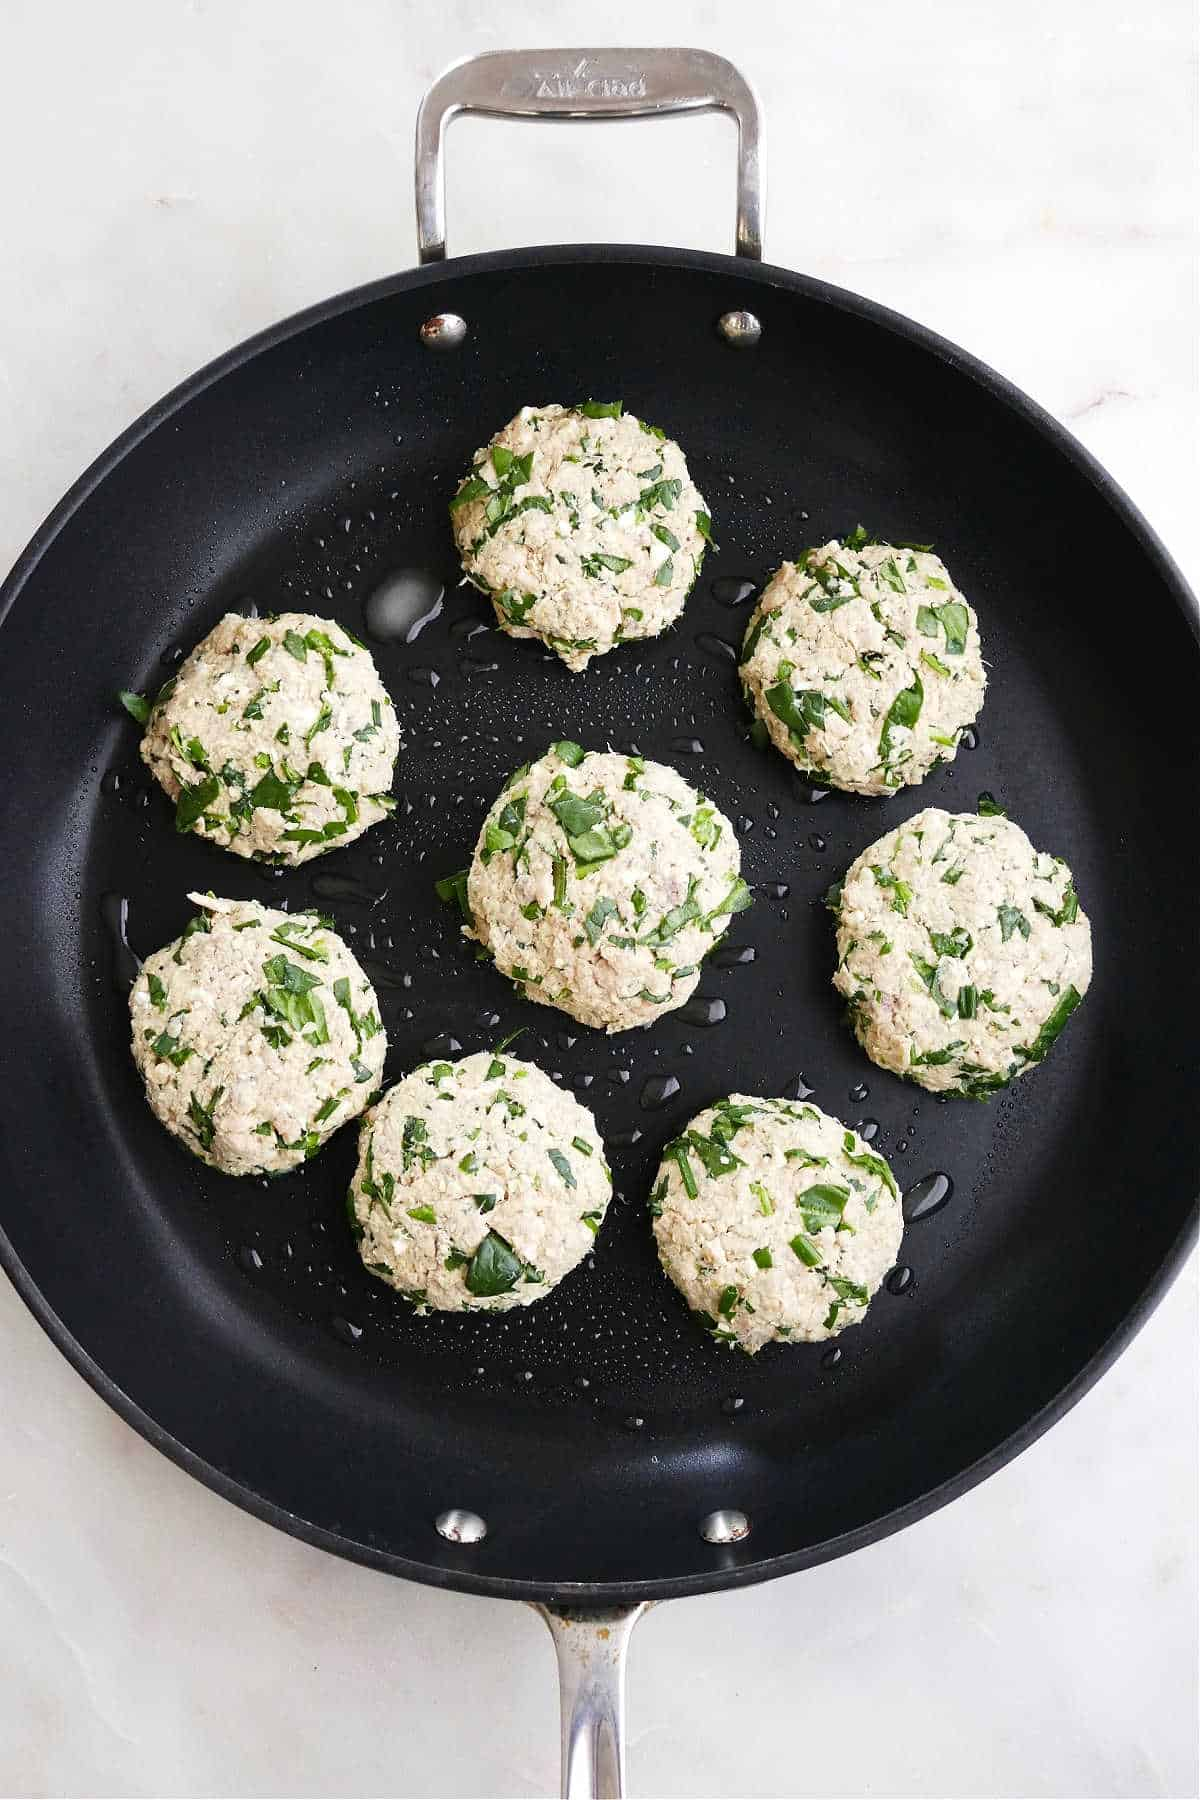 eight salmon burgers cooking in a large black skillet on a counter